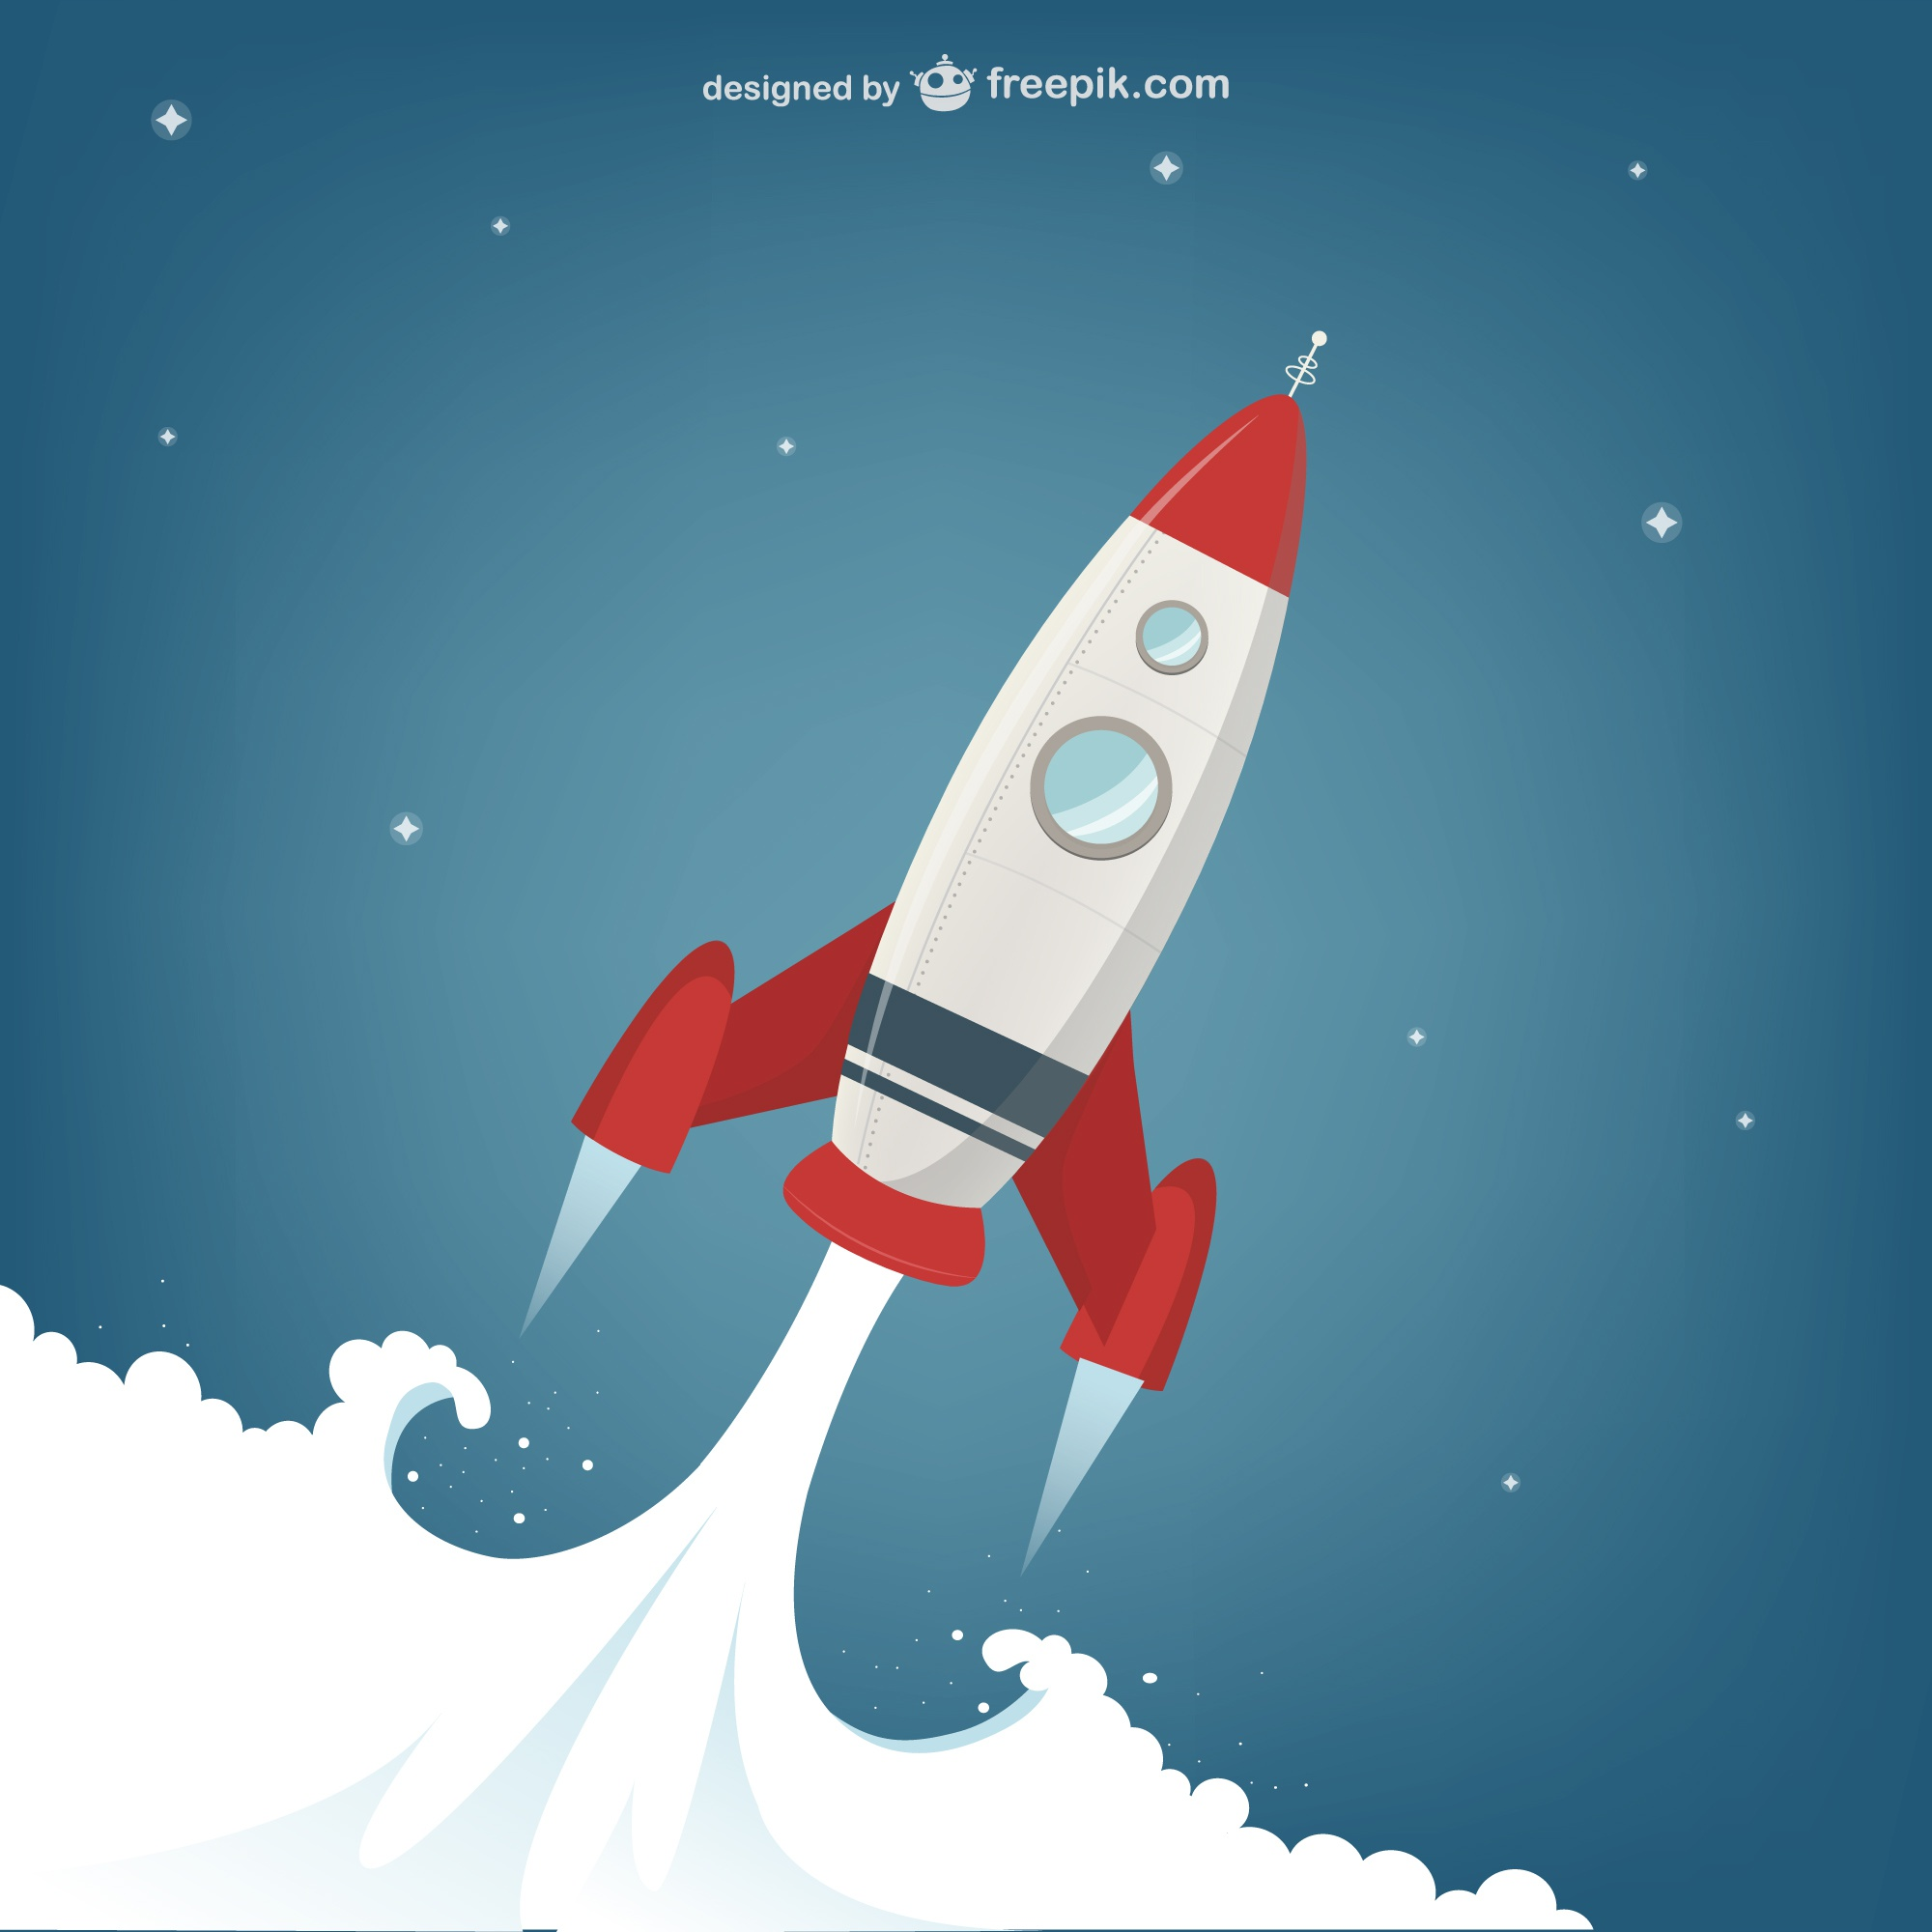 Rocket illustration vector